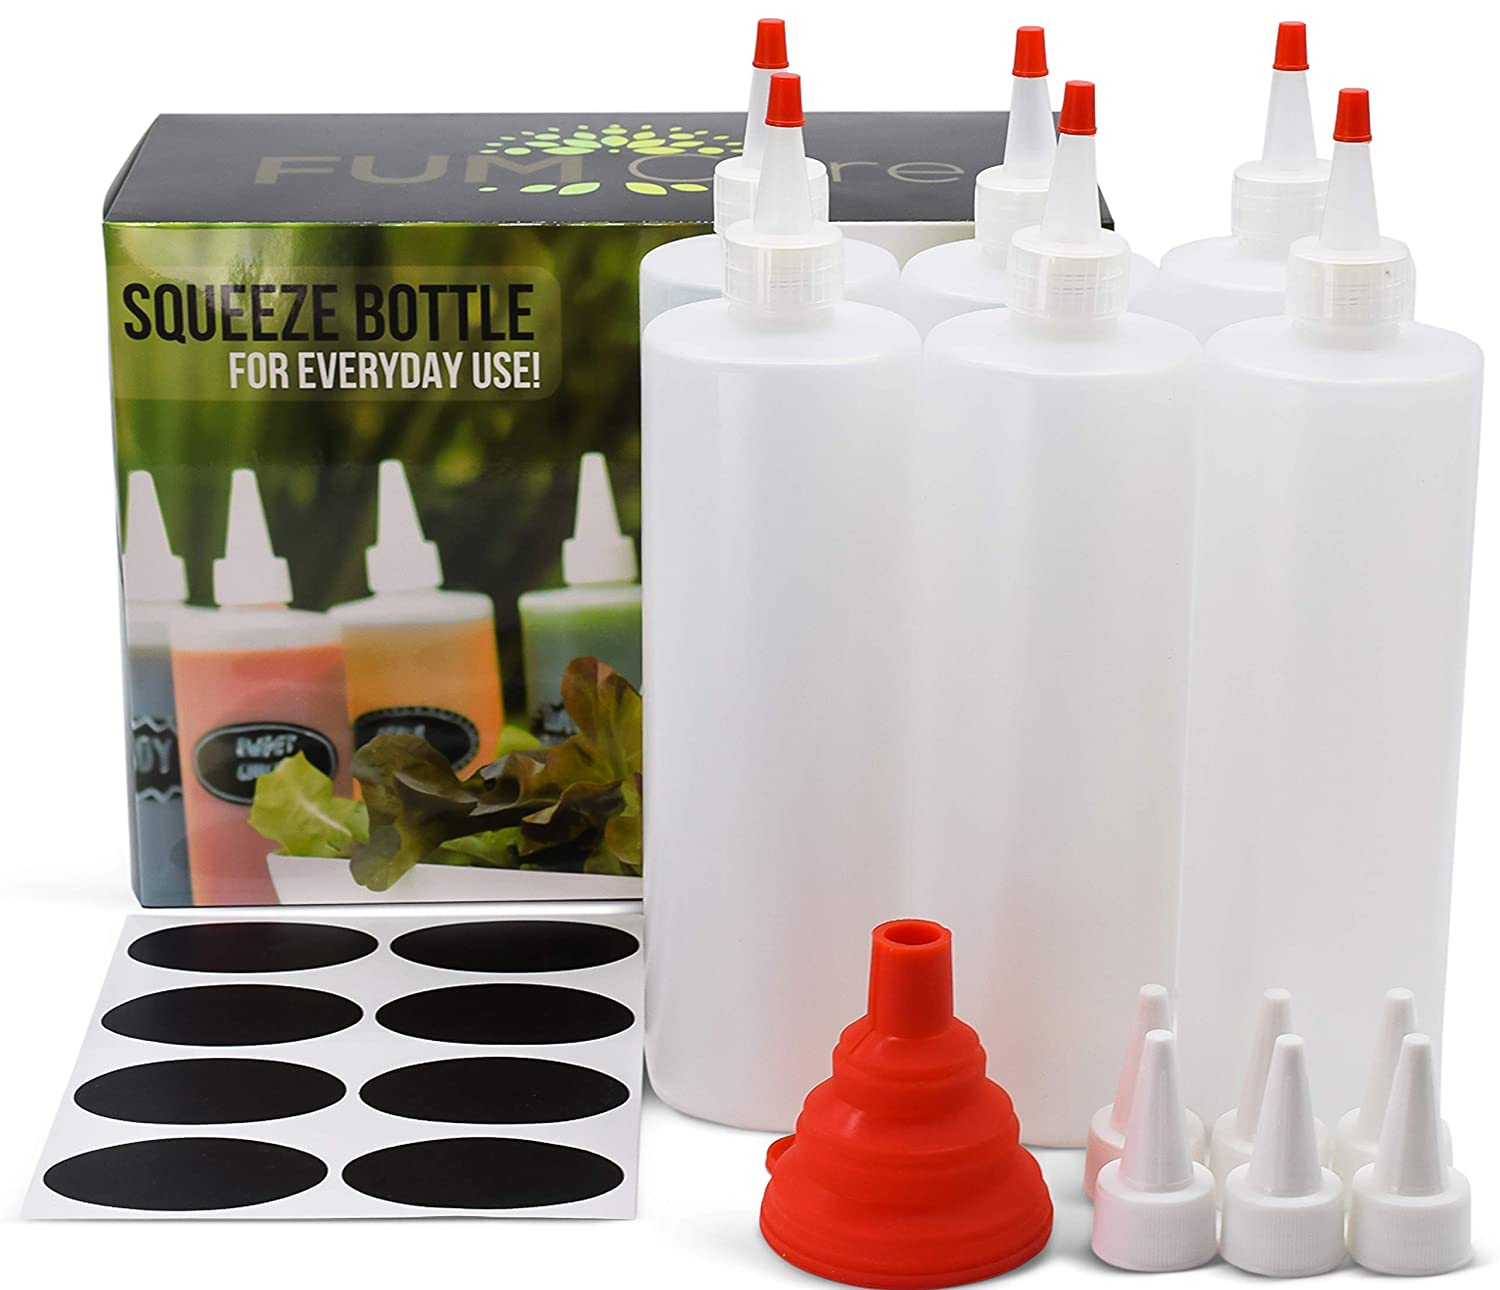 Squeeze Bottle 16 oz - Set of 6 - Red Caps, Silicone Funnel, Chalk Labels, 6 Extra White Caps, E-book Leakproof, BPA Free & Refillable Squirt Plastic Bottles For Condiments, Mustard, Ketchup